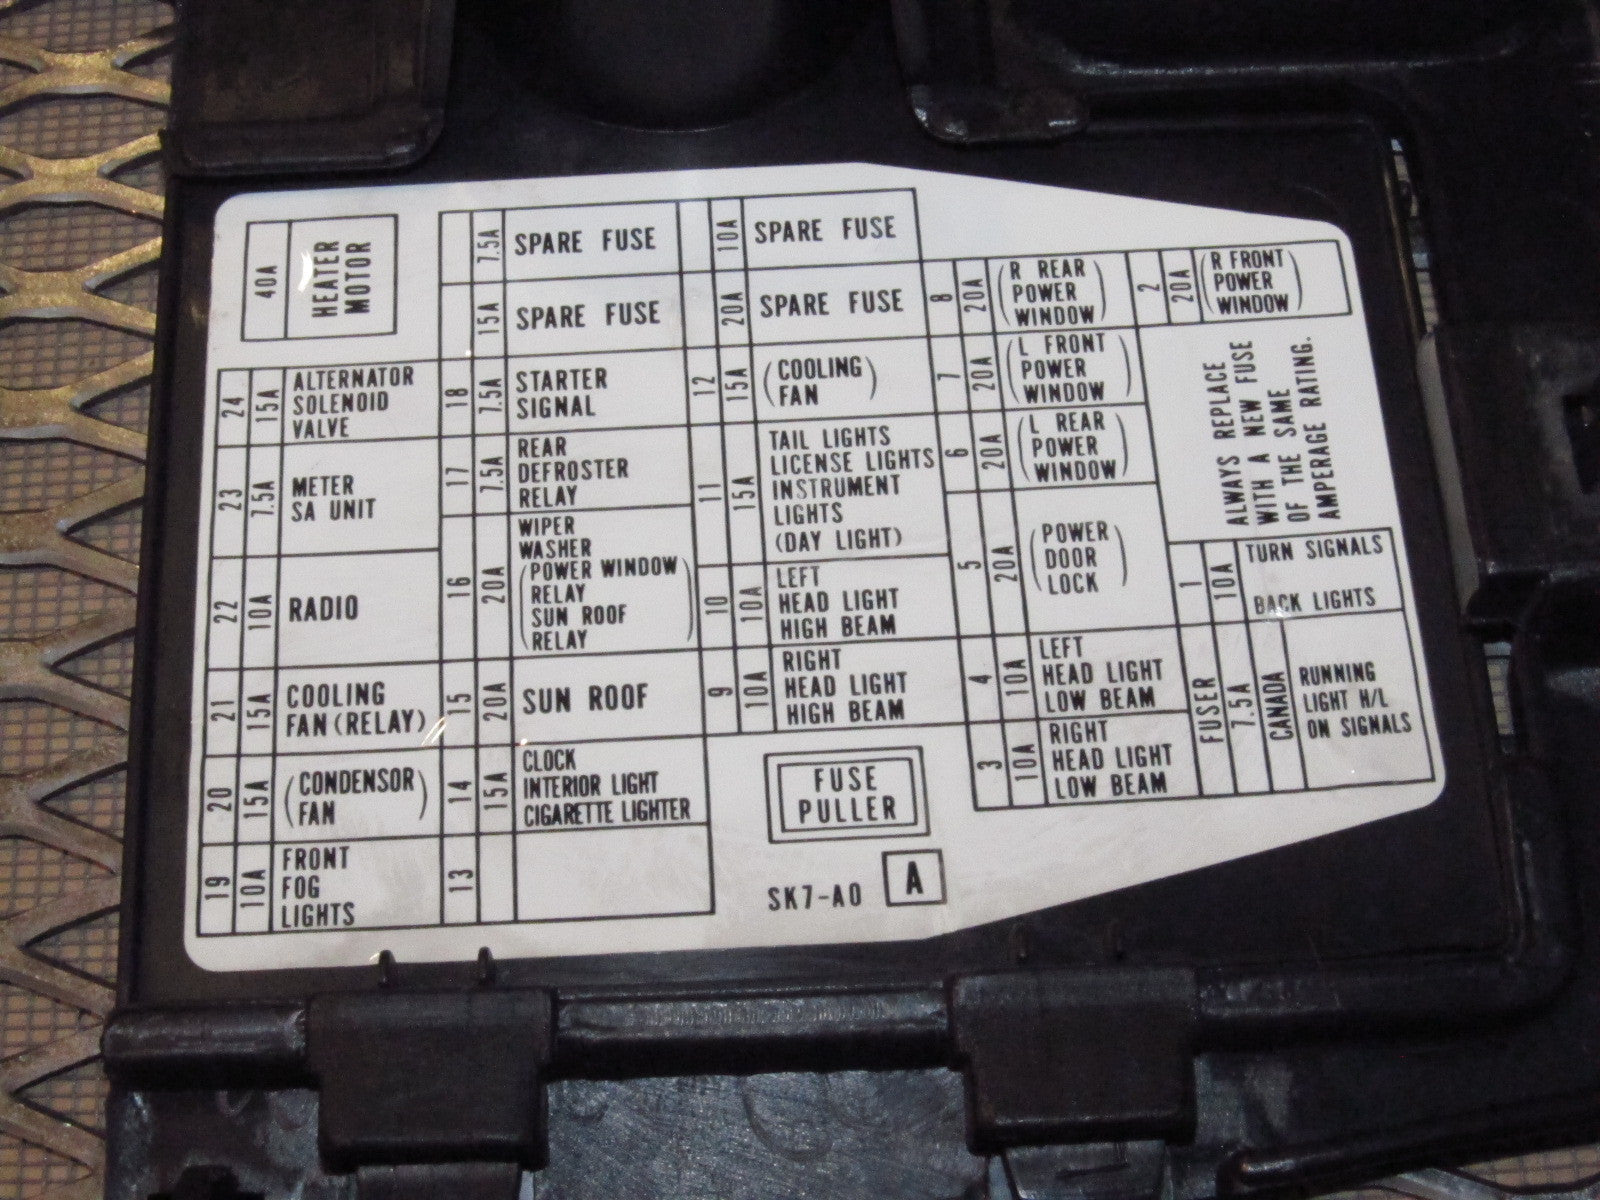 2001 acura integra fuse box diagram 90 91 92 93 acura integra oem kick panel cover set – autopartone.com 90 93 integra fuse box